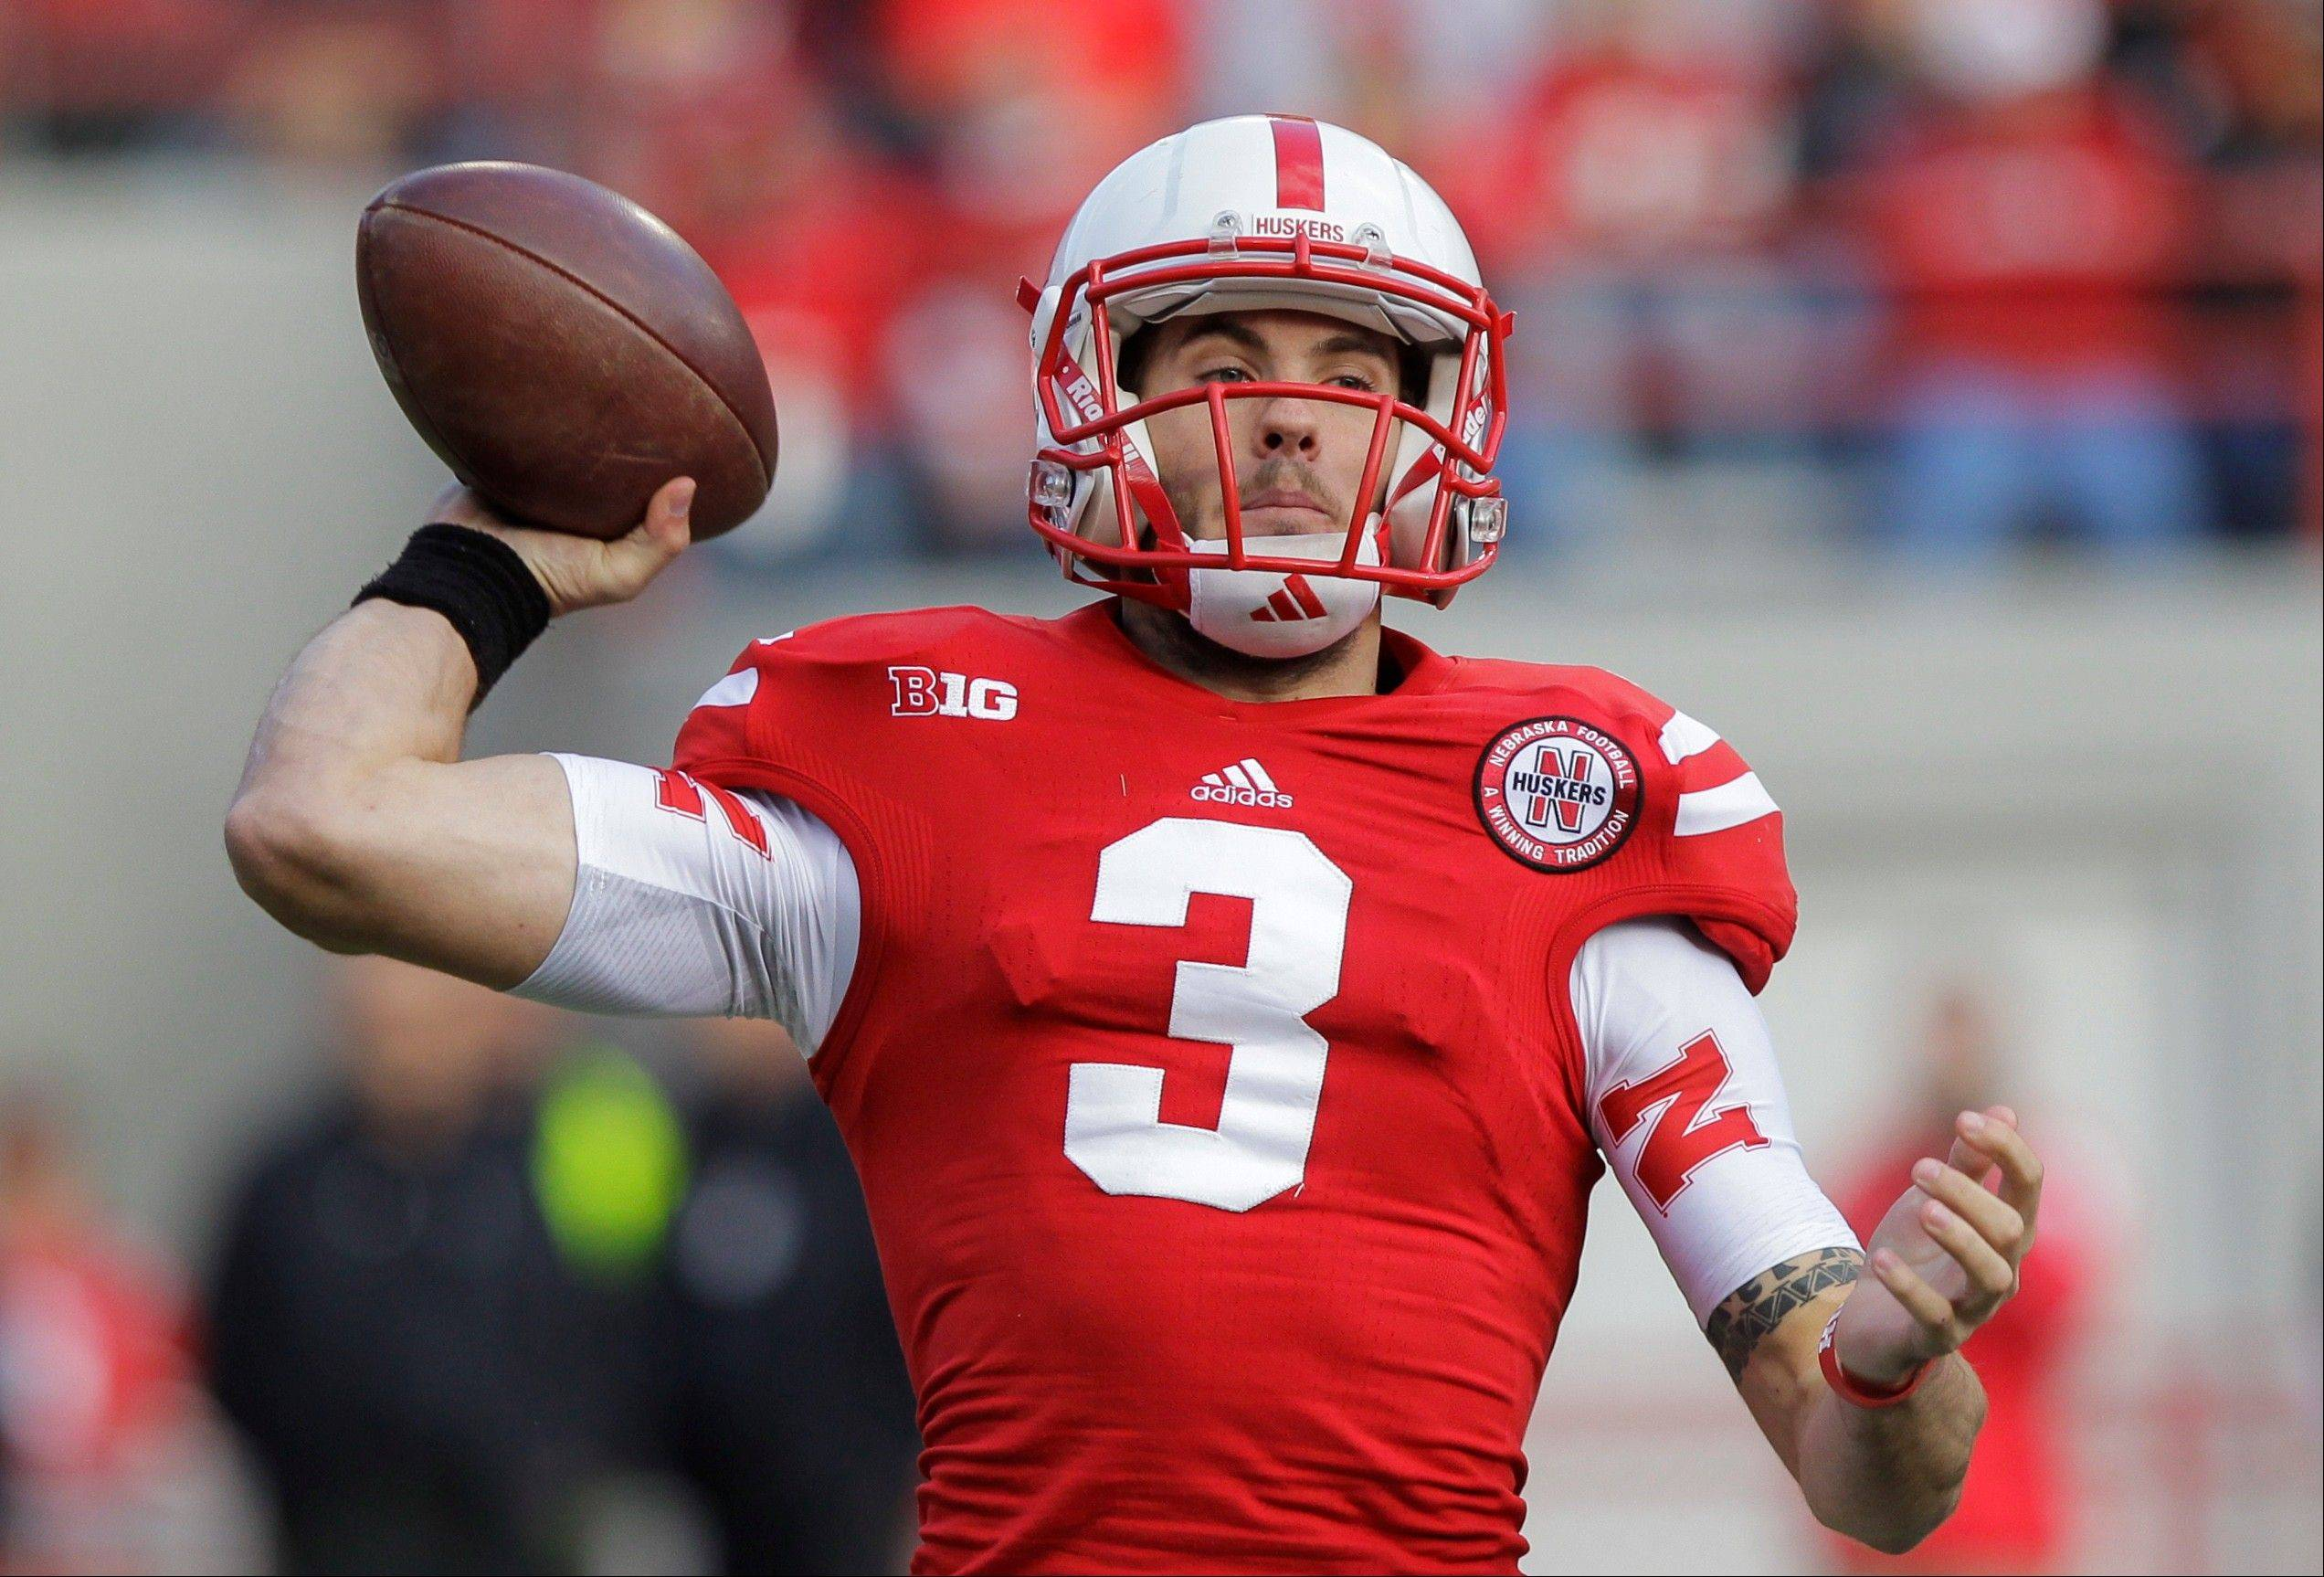 Nebraska quarterback Taylor Martinez throws in the first half of an NCAA college football game against Minnesota in Lincoln, Neb., Saturday, Nov. 17, 2012.